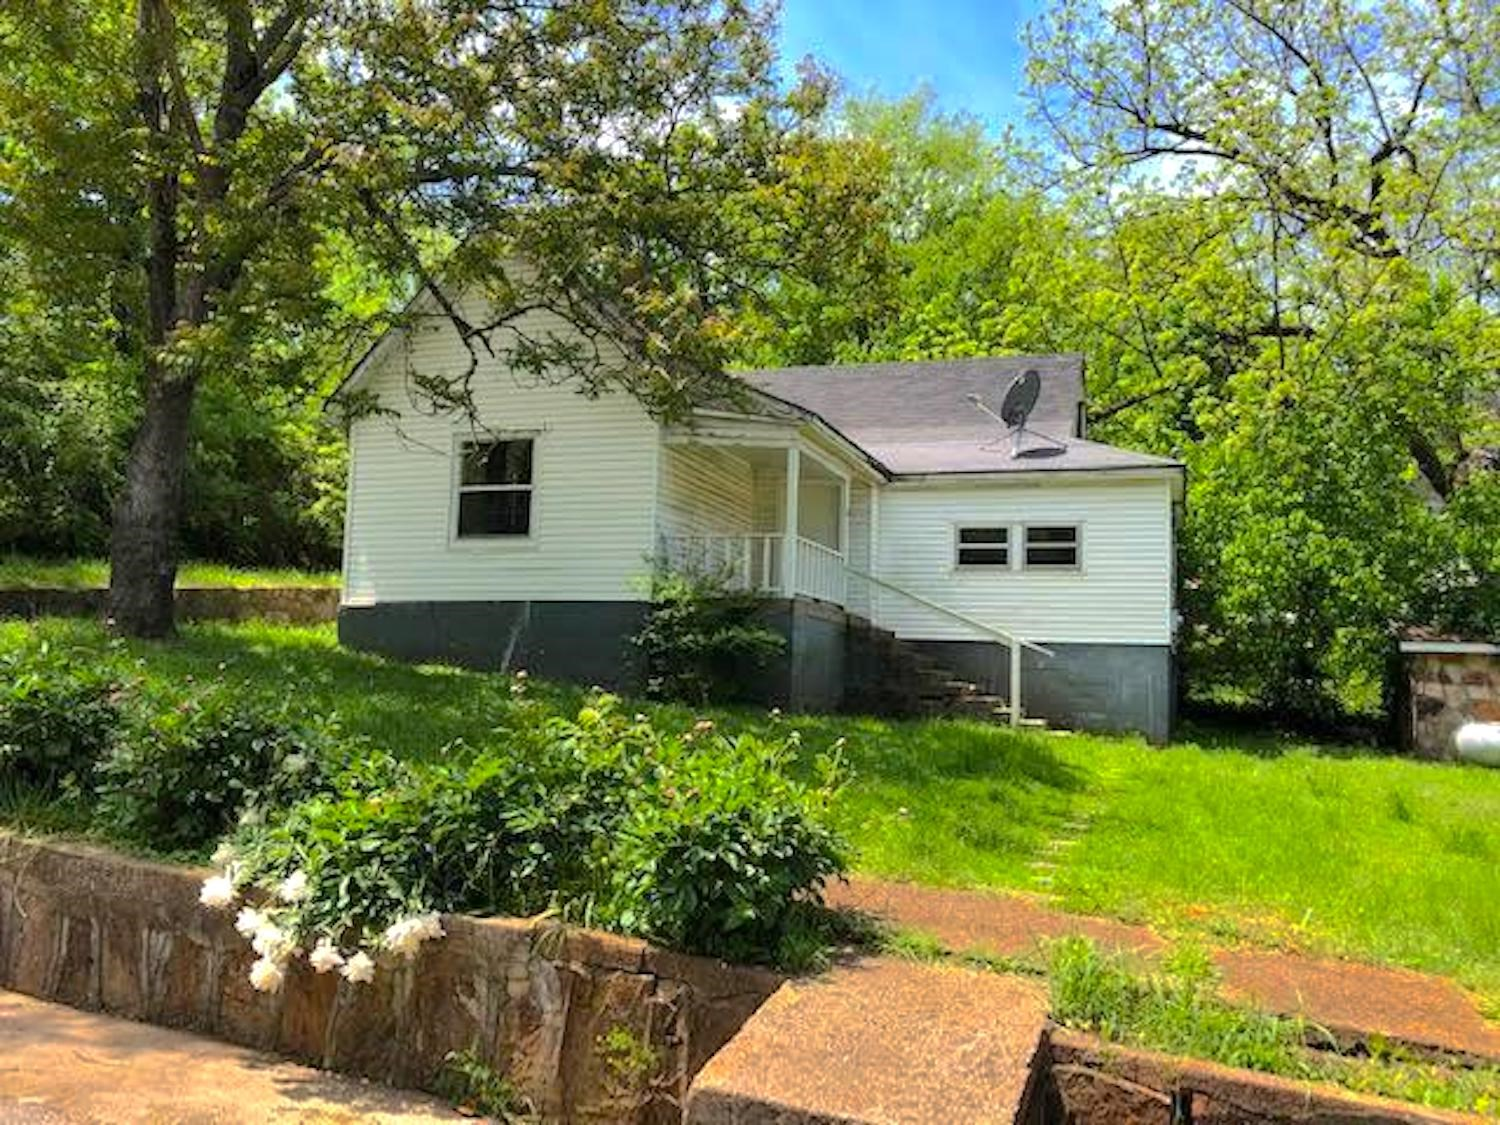 Home for Sale in Thayer, MO